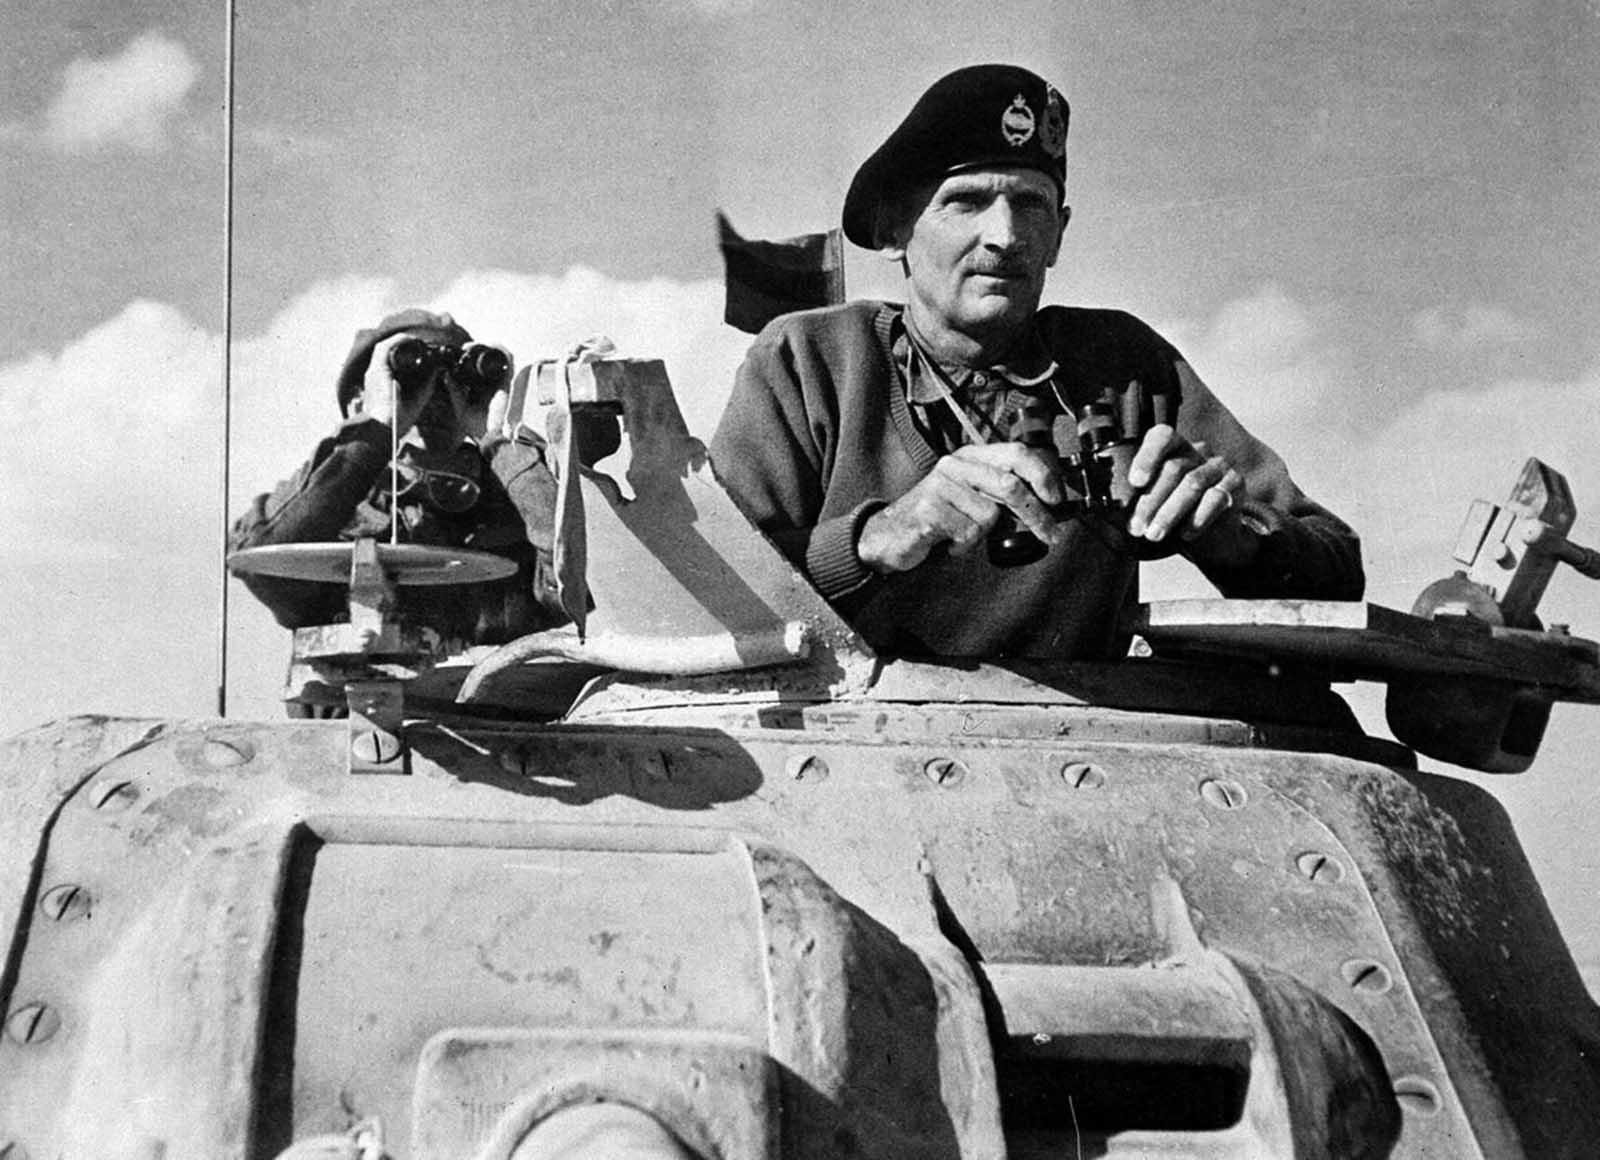 Britain's General Bernard Montgomery, Commander of the Eighth Army, watches battle in Egypt's Western Desert, from the turret of an M3 Grant tank, in 1942.